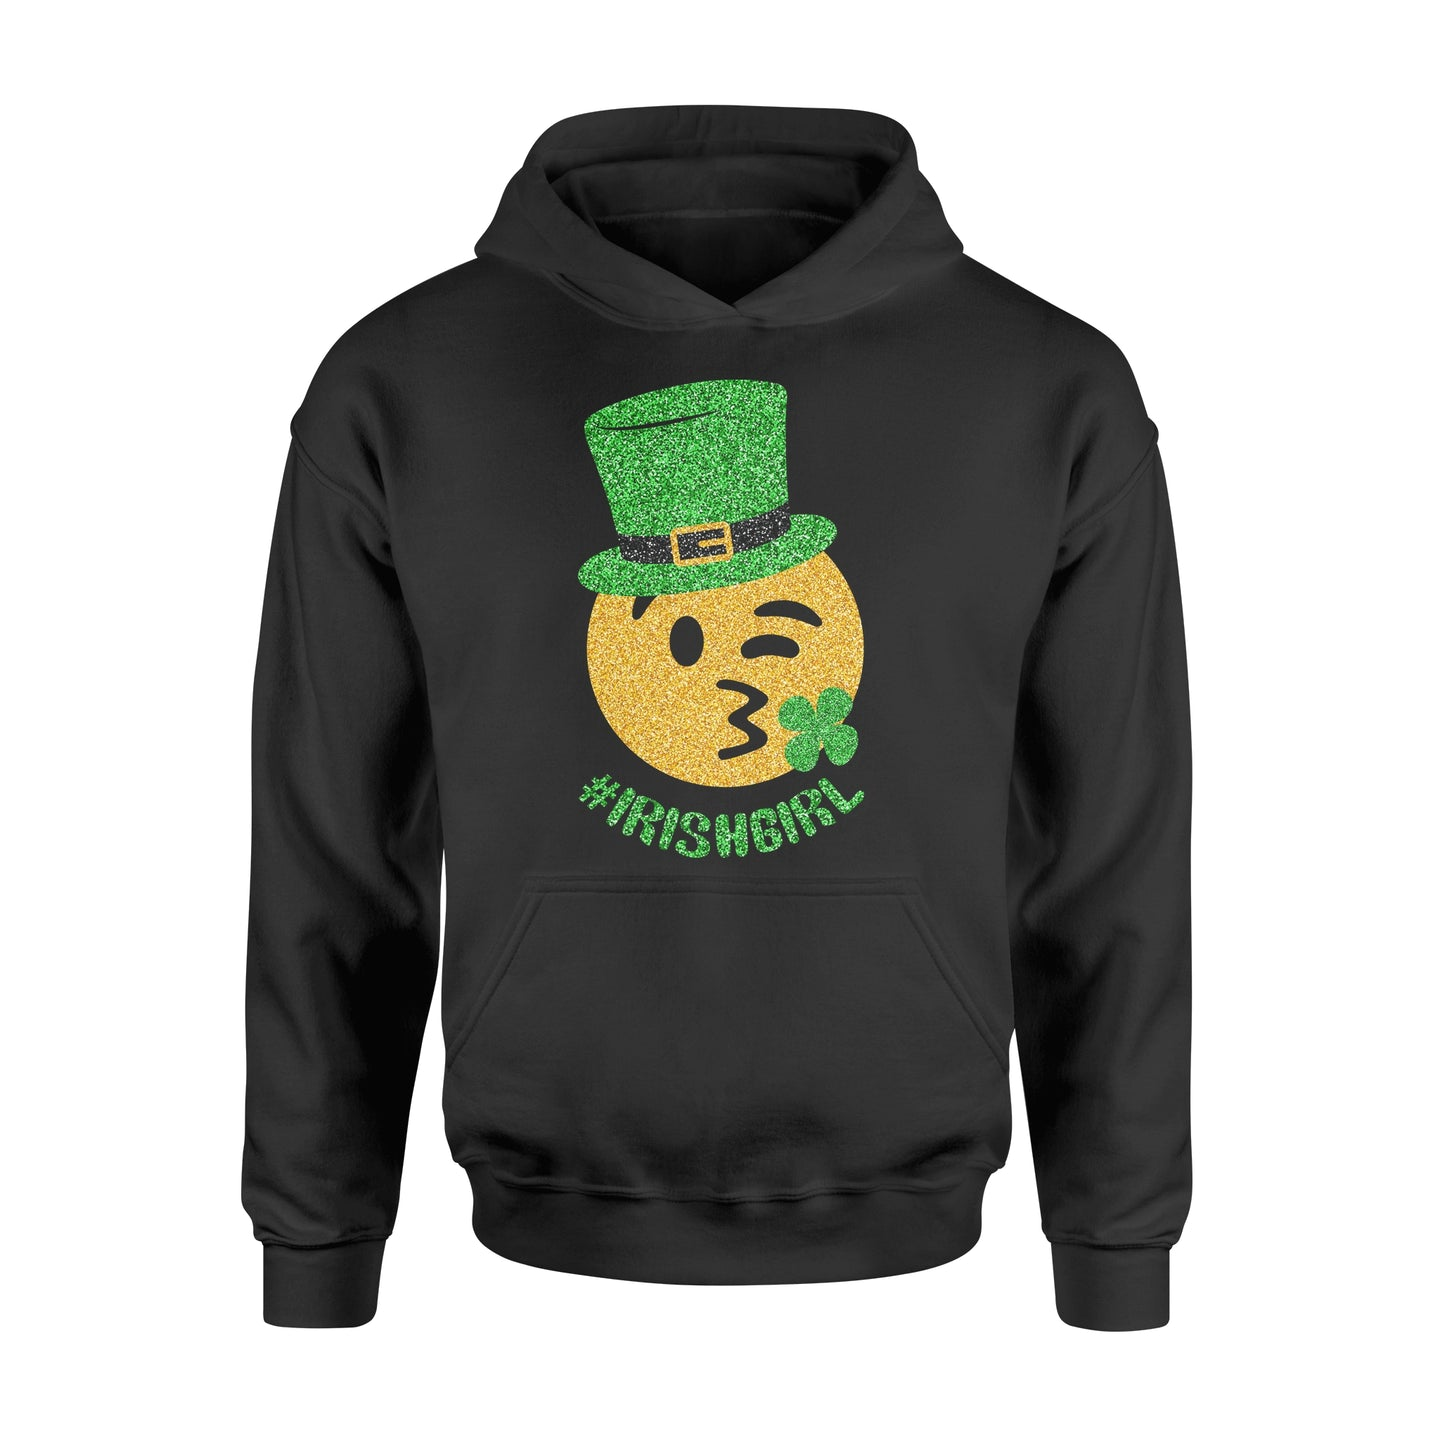 Mens Womens Irish Girl St Patricks Day Paddys Day Shirts - Standard Hoodie Apparel S / Black